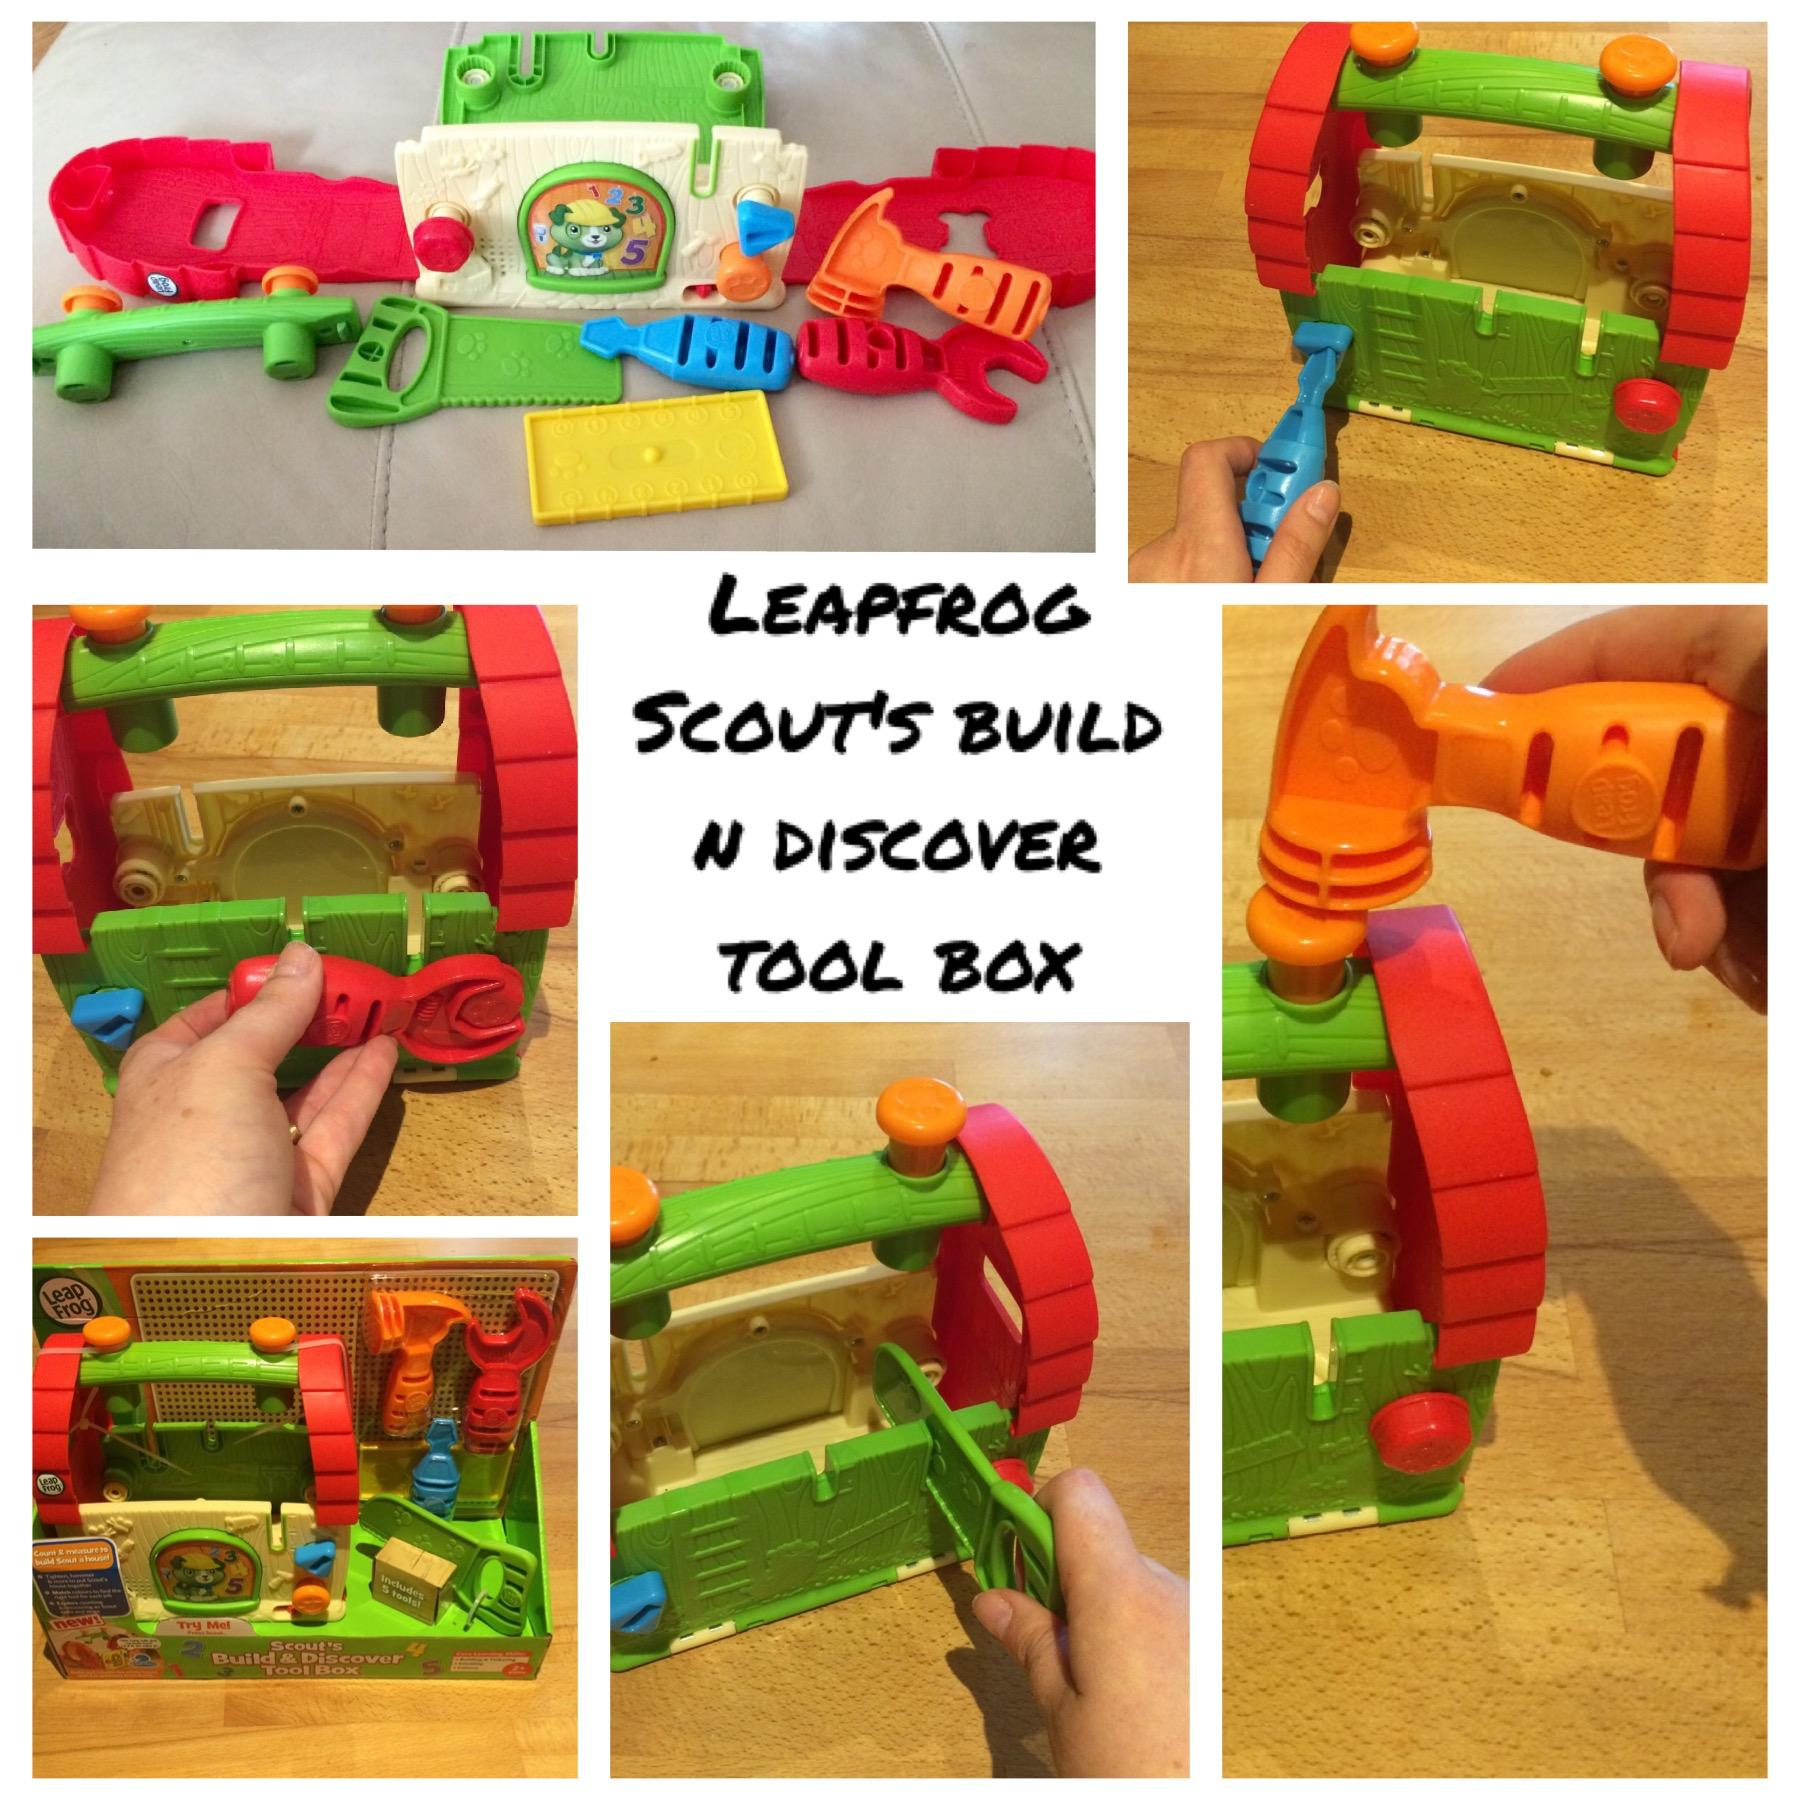 6ebba8189f LeapFrog Scout s Build and Discover Tool Box - MotherGeek